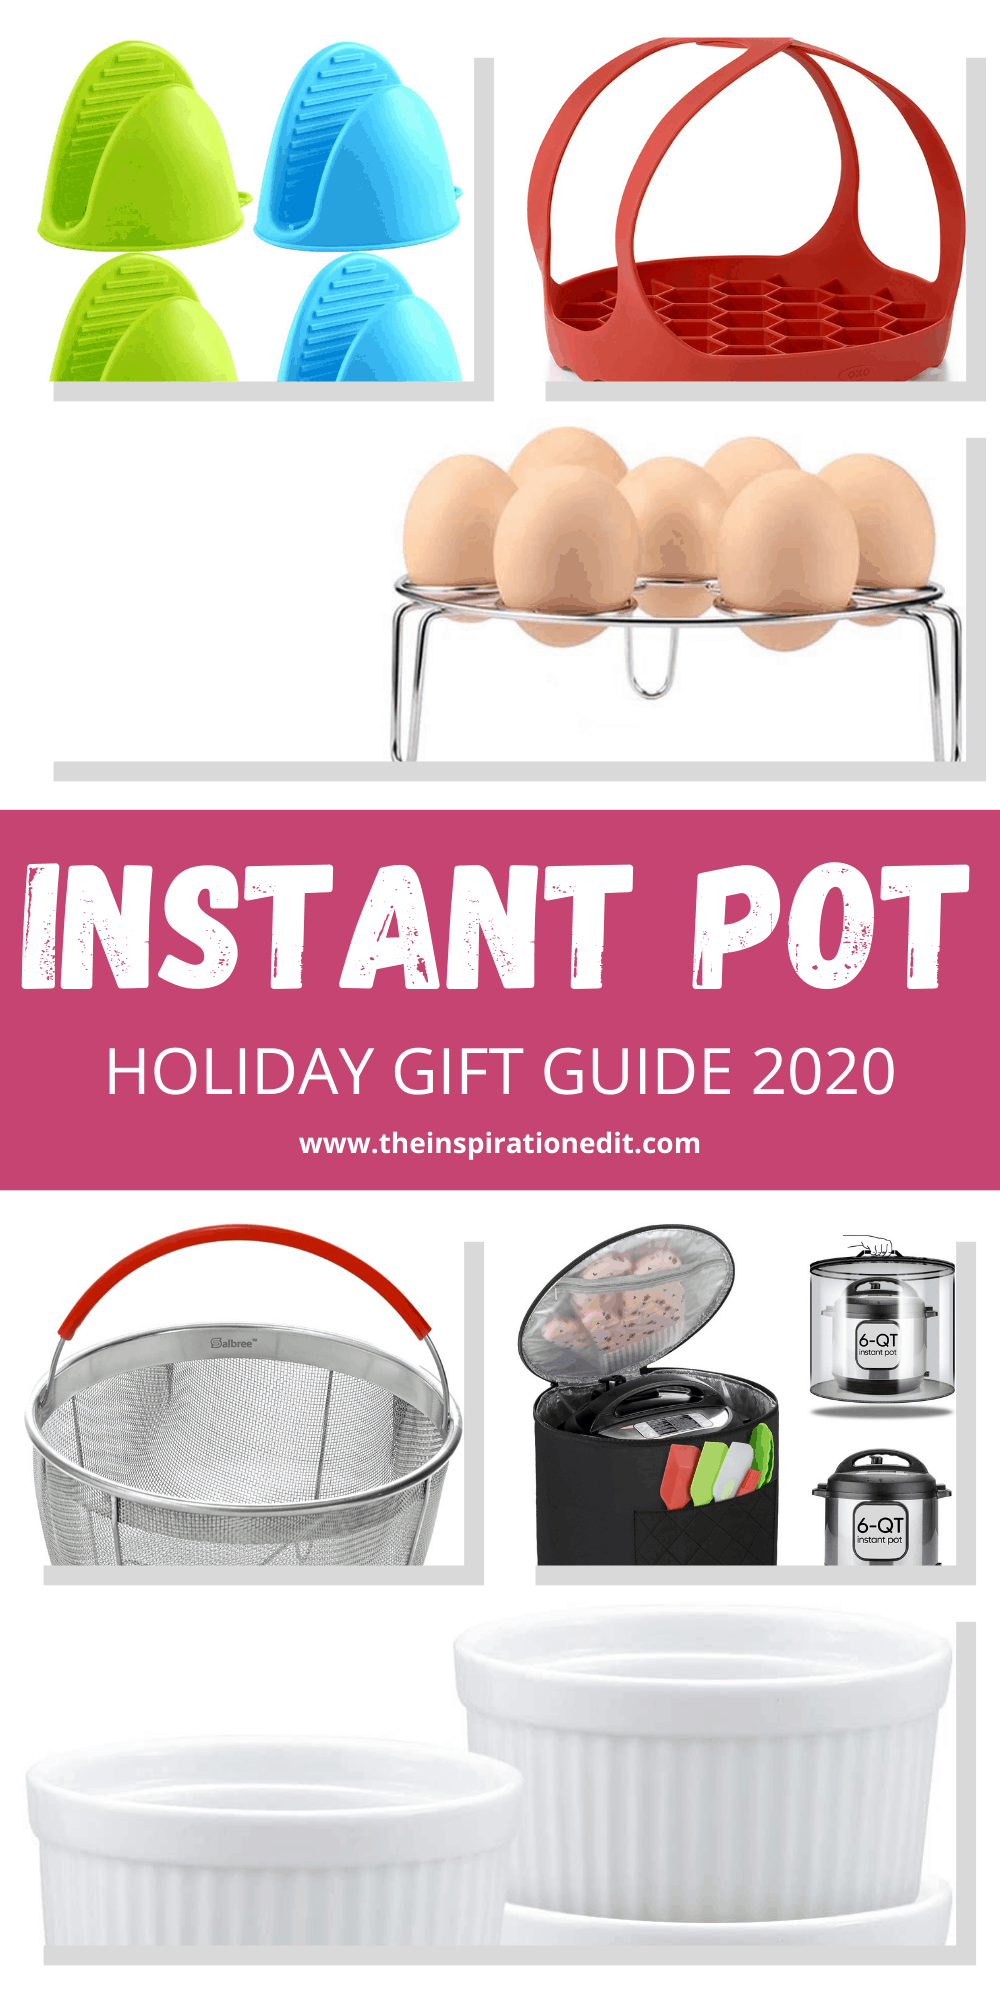 instant pot gift guide ideas